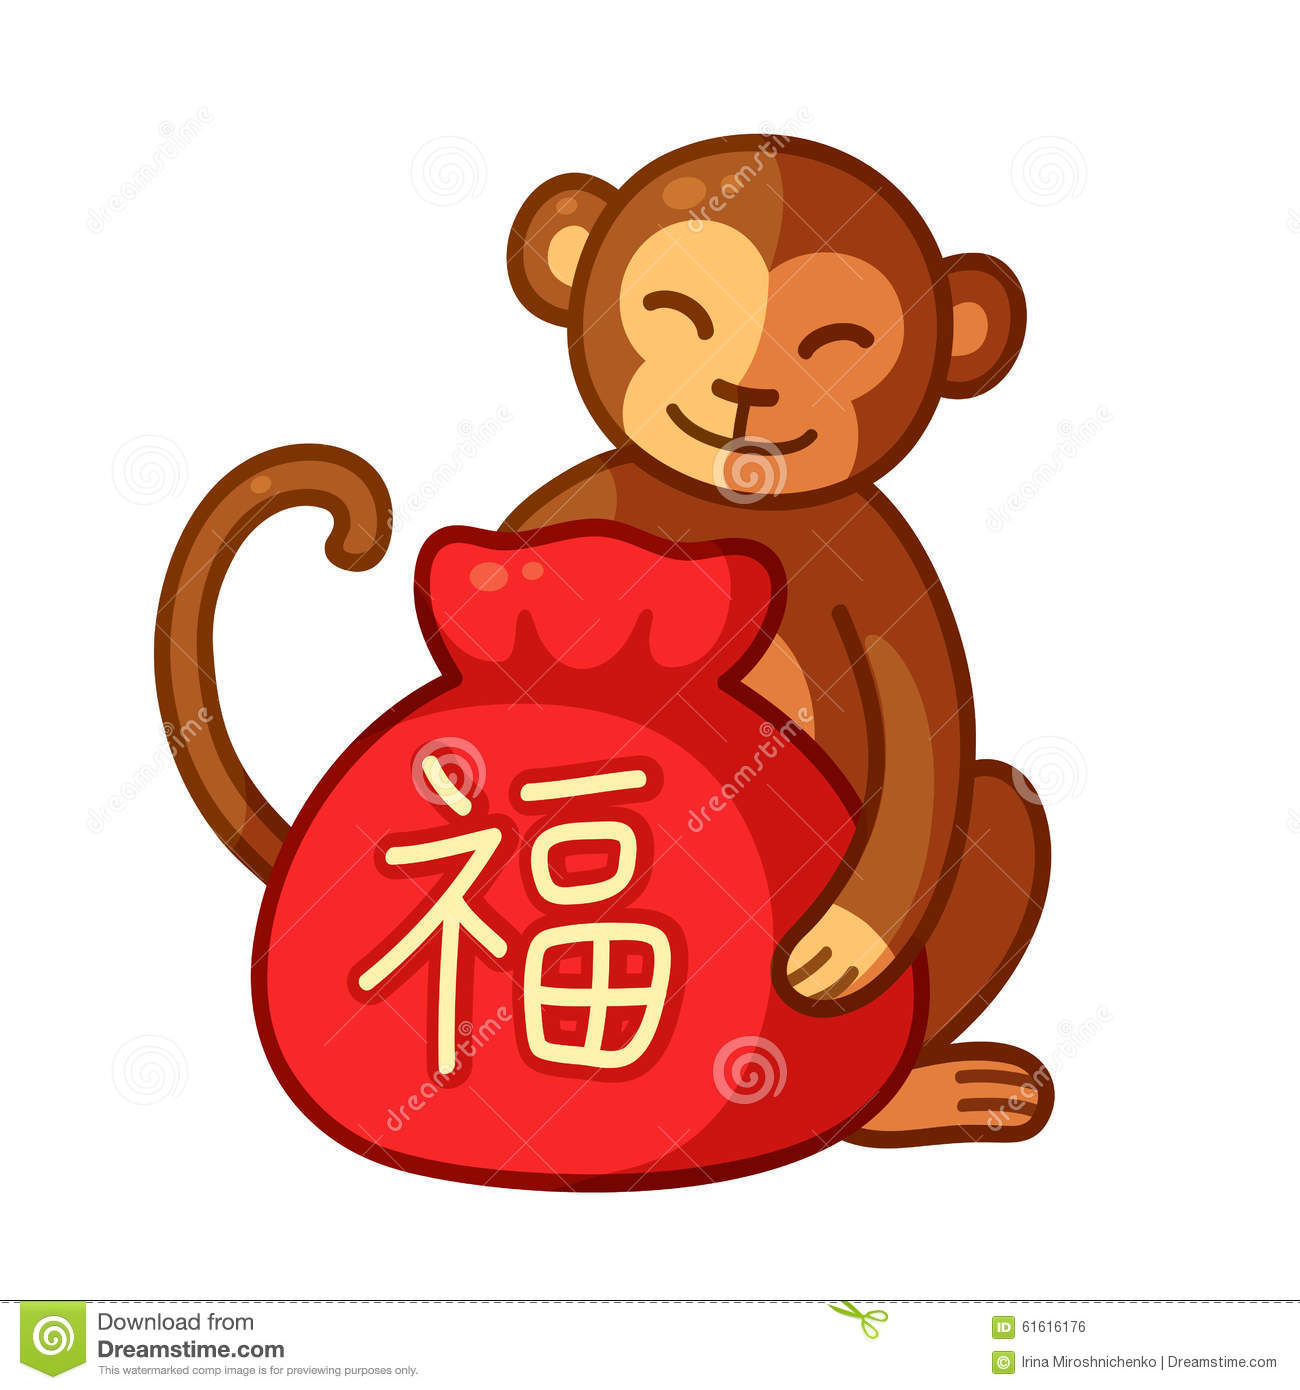 d45c6ac6258 Chinese New Year Monkey stock vector. Illustration of cute - 61616176